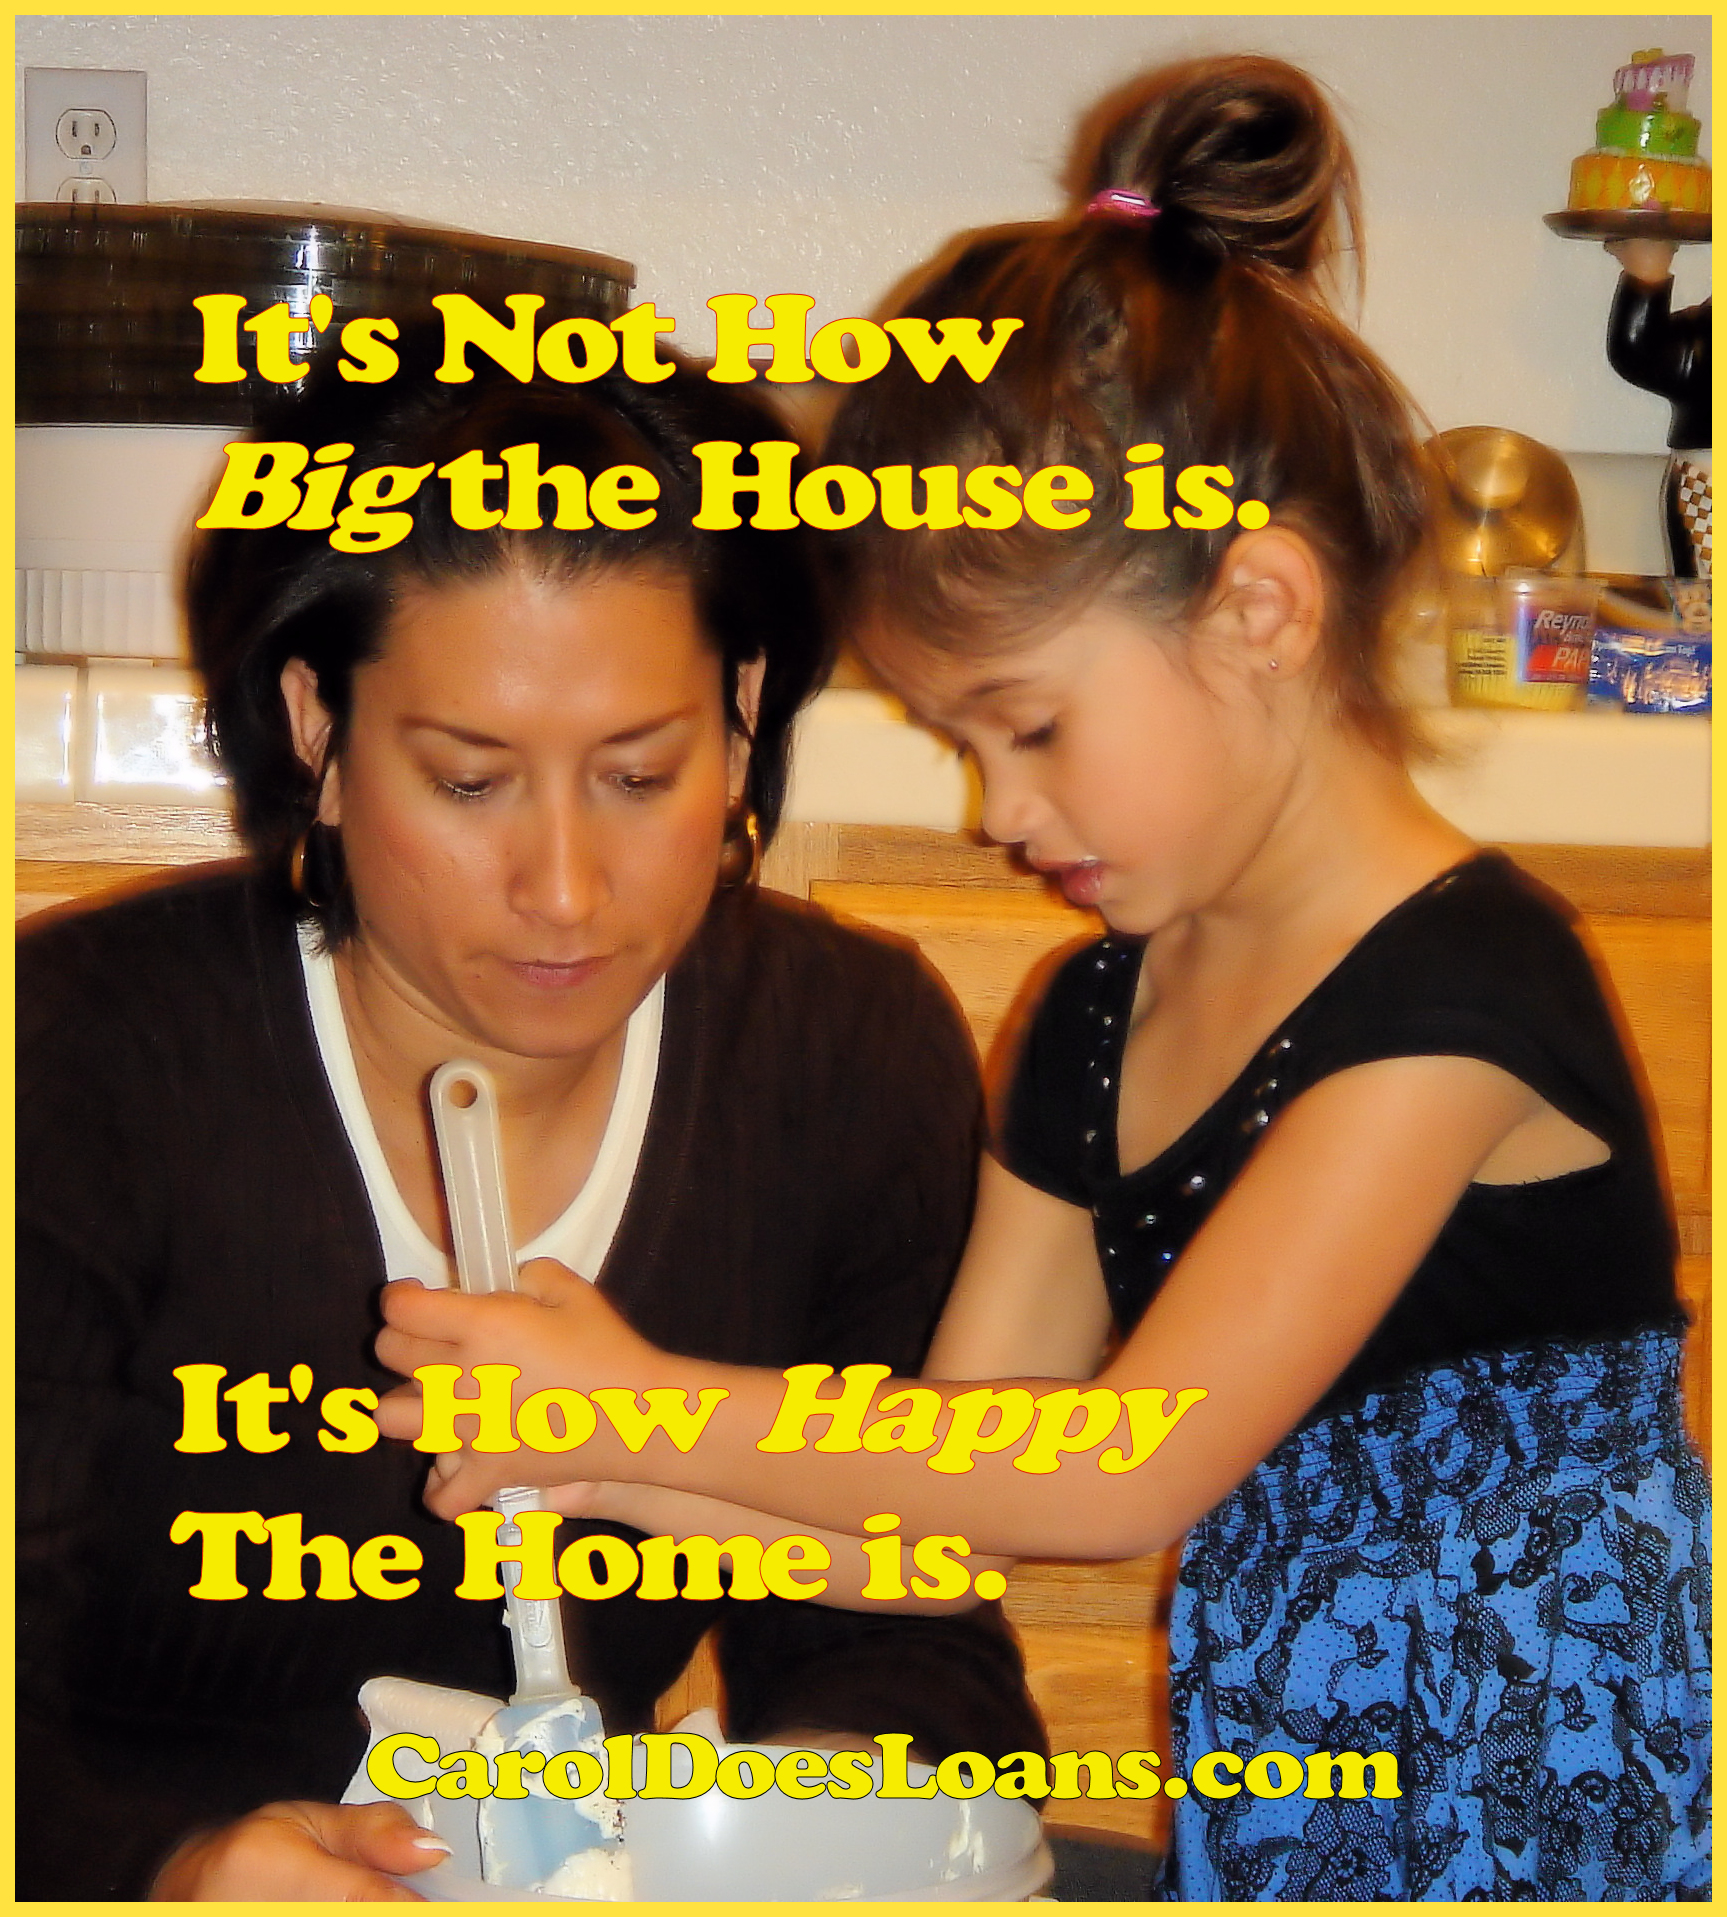 It's not how big the house is - It's how happy the home is.